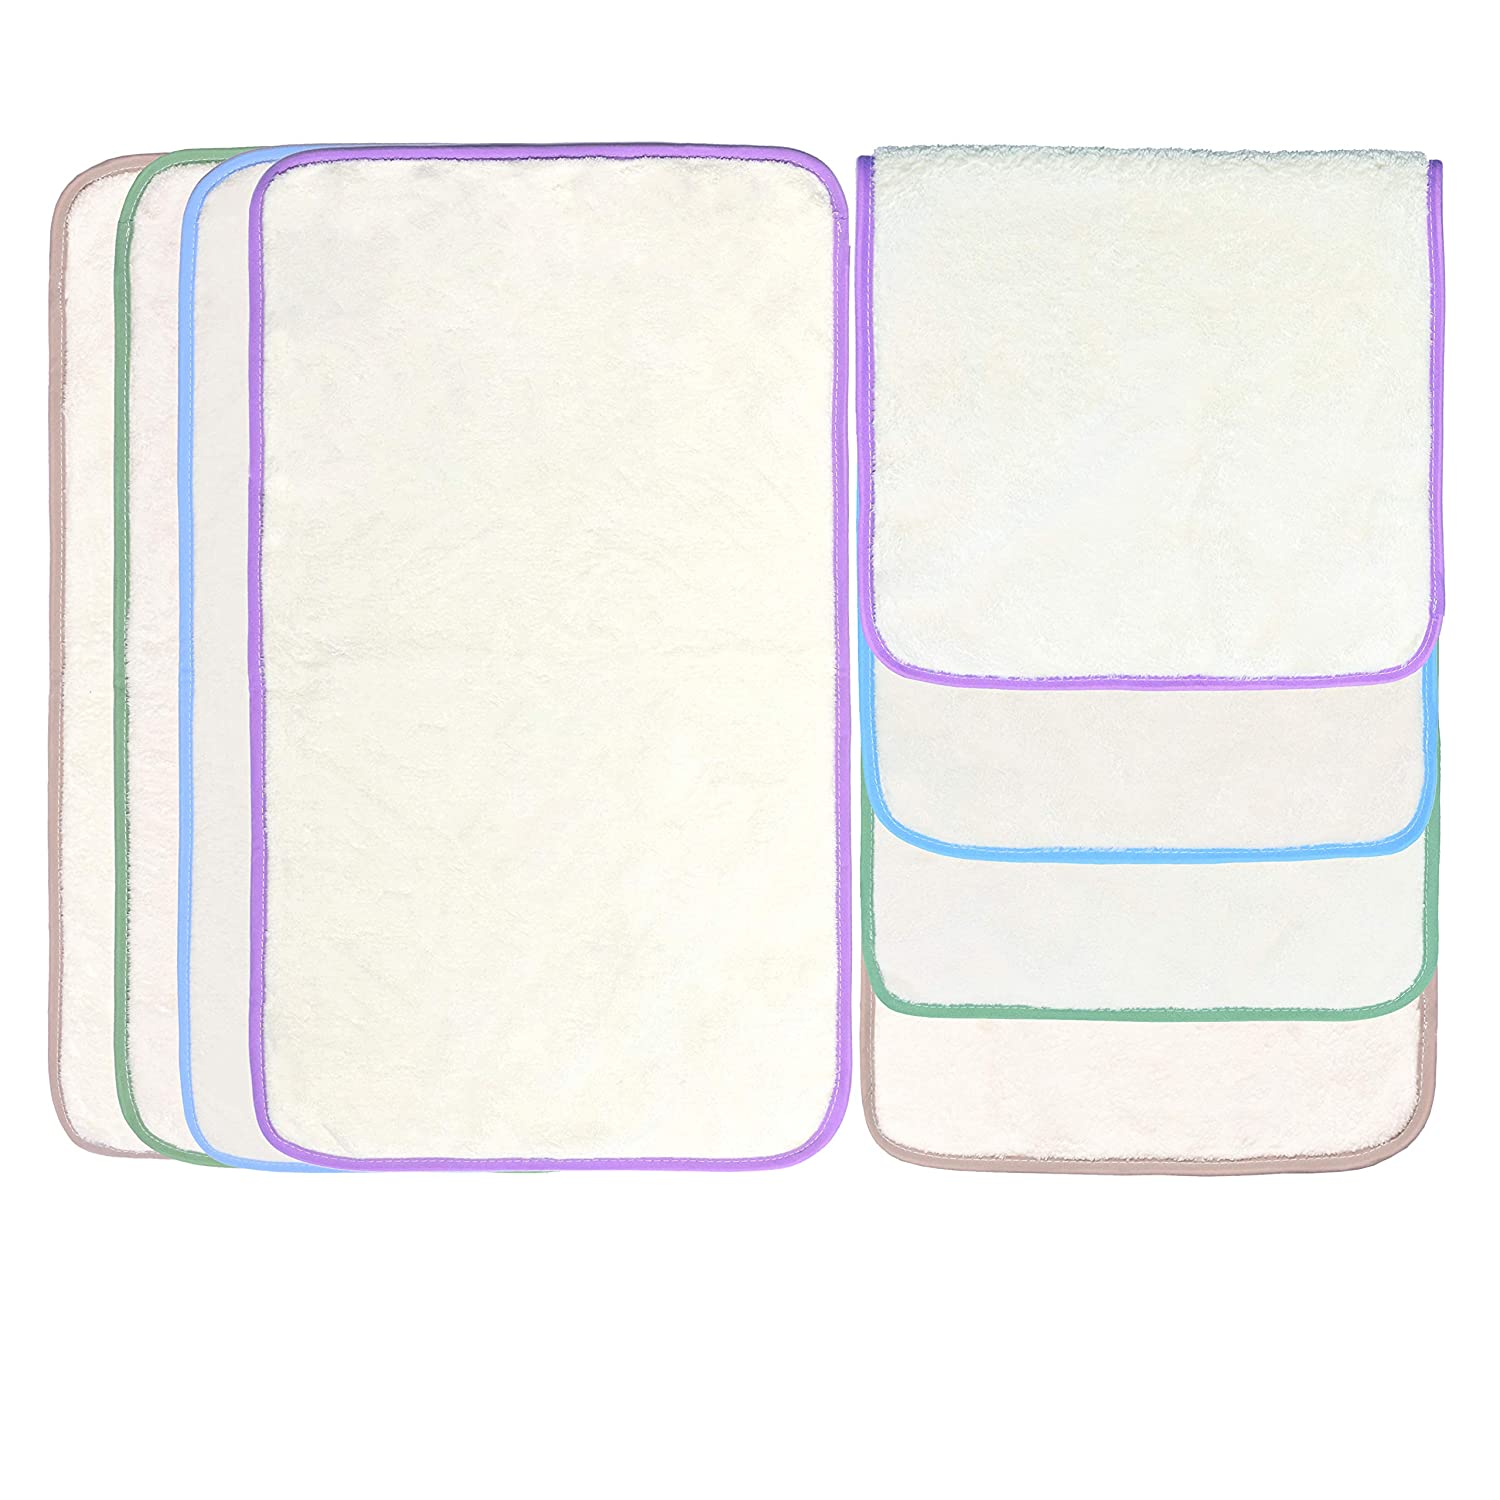 Kyapoo Burp Cloths 8 Pack Large Free shipping Sales of SALE items from new works New by 10.8